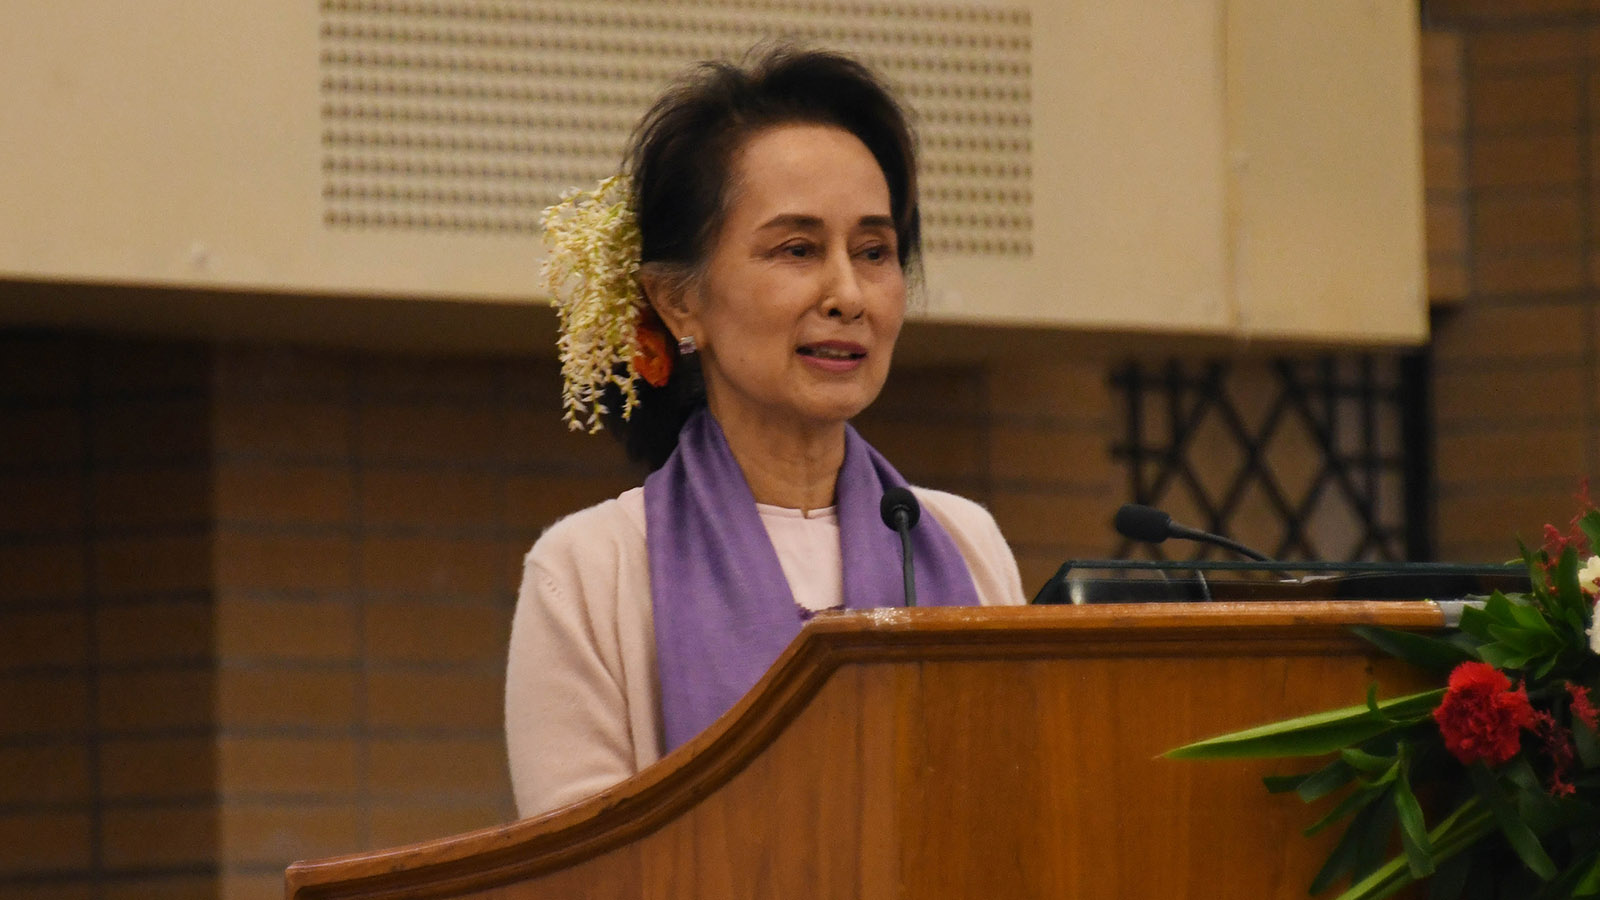 State Counsellor Daw Aung San Suu Kyi delivers the opening speech at the Education Development Implementation Conference 2020 (Basic Education Sector) in Nay Pyi Taw.Photo: MNA